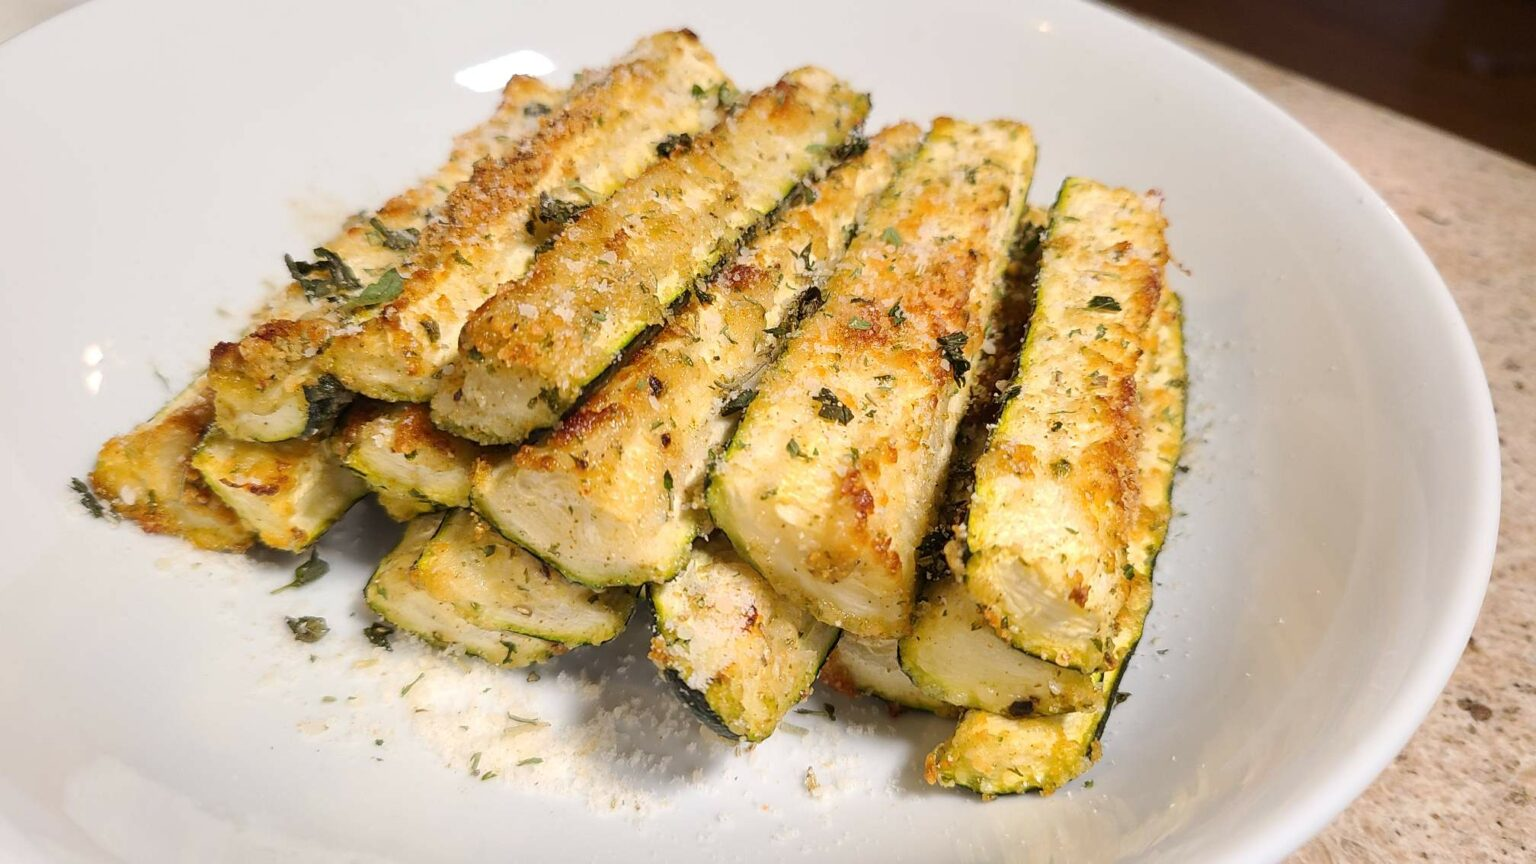 Baked Parmesan Zucchini fries on a plate